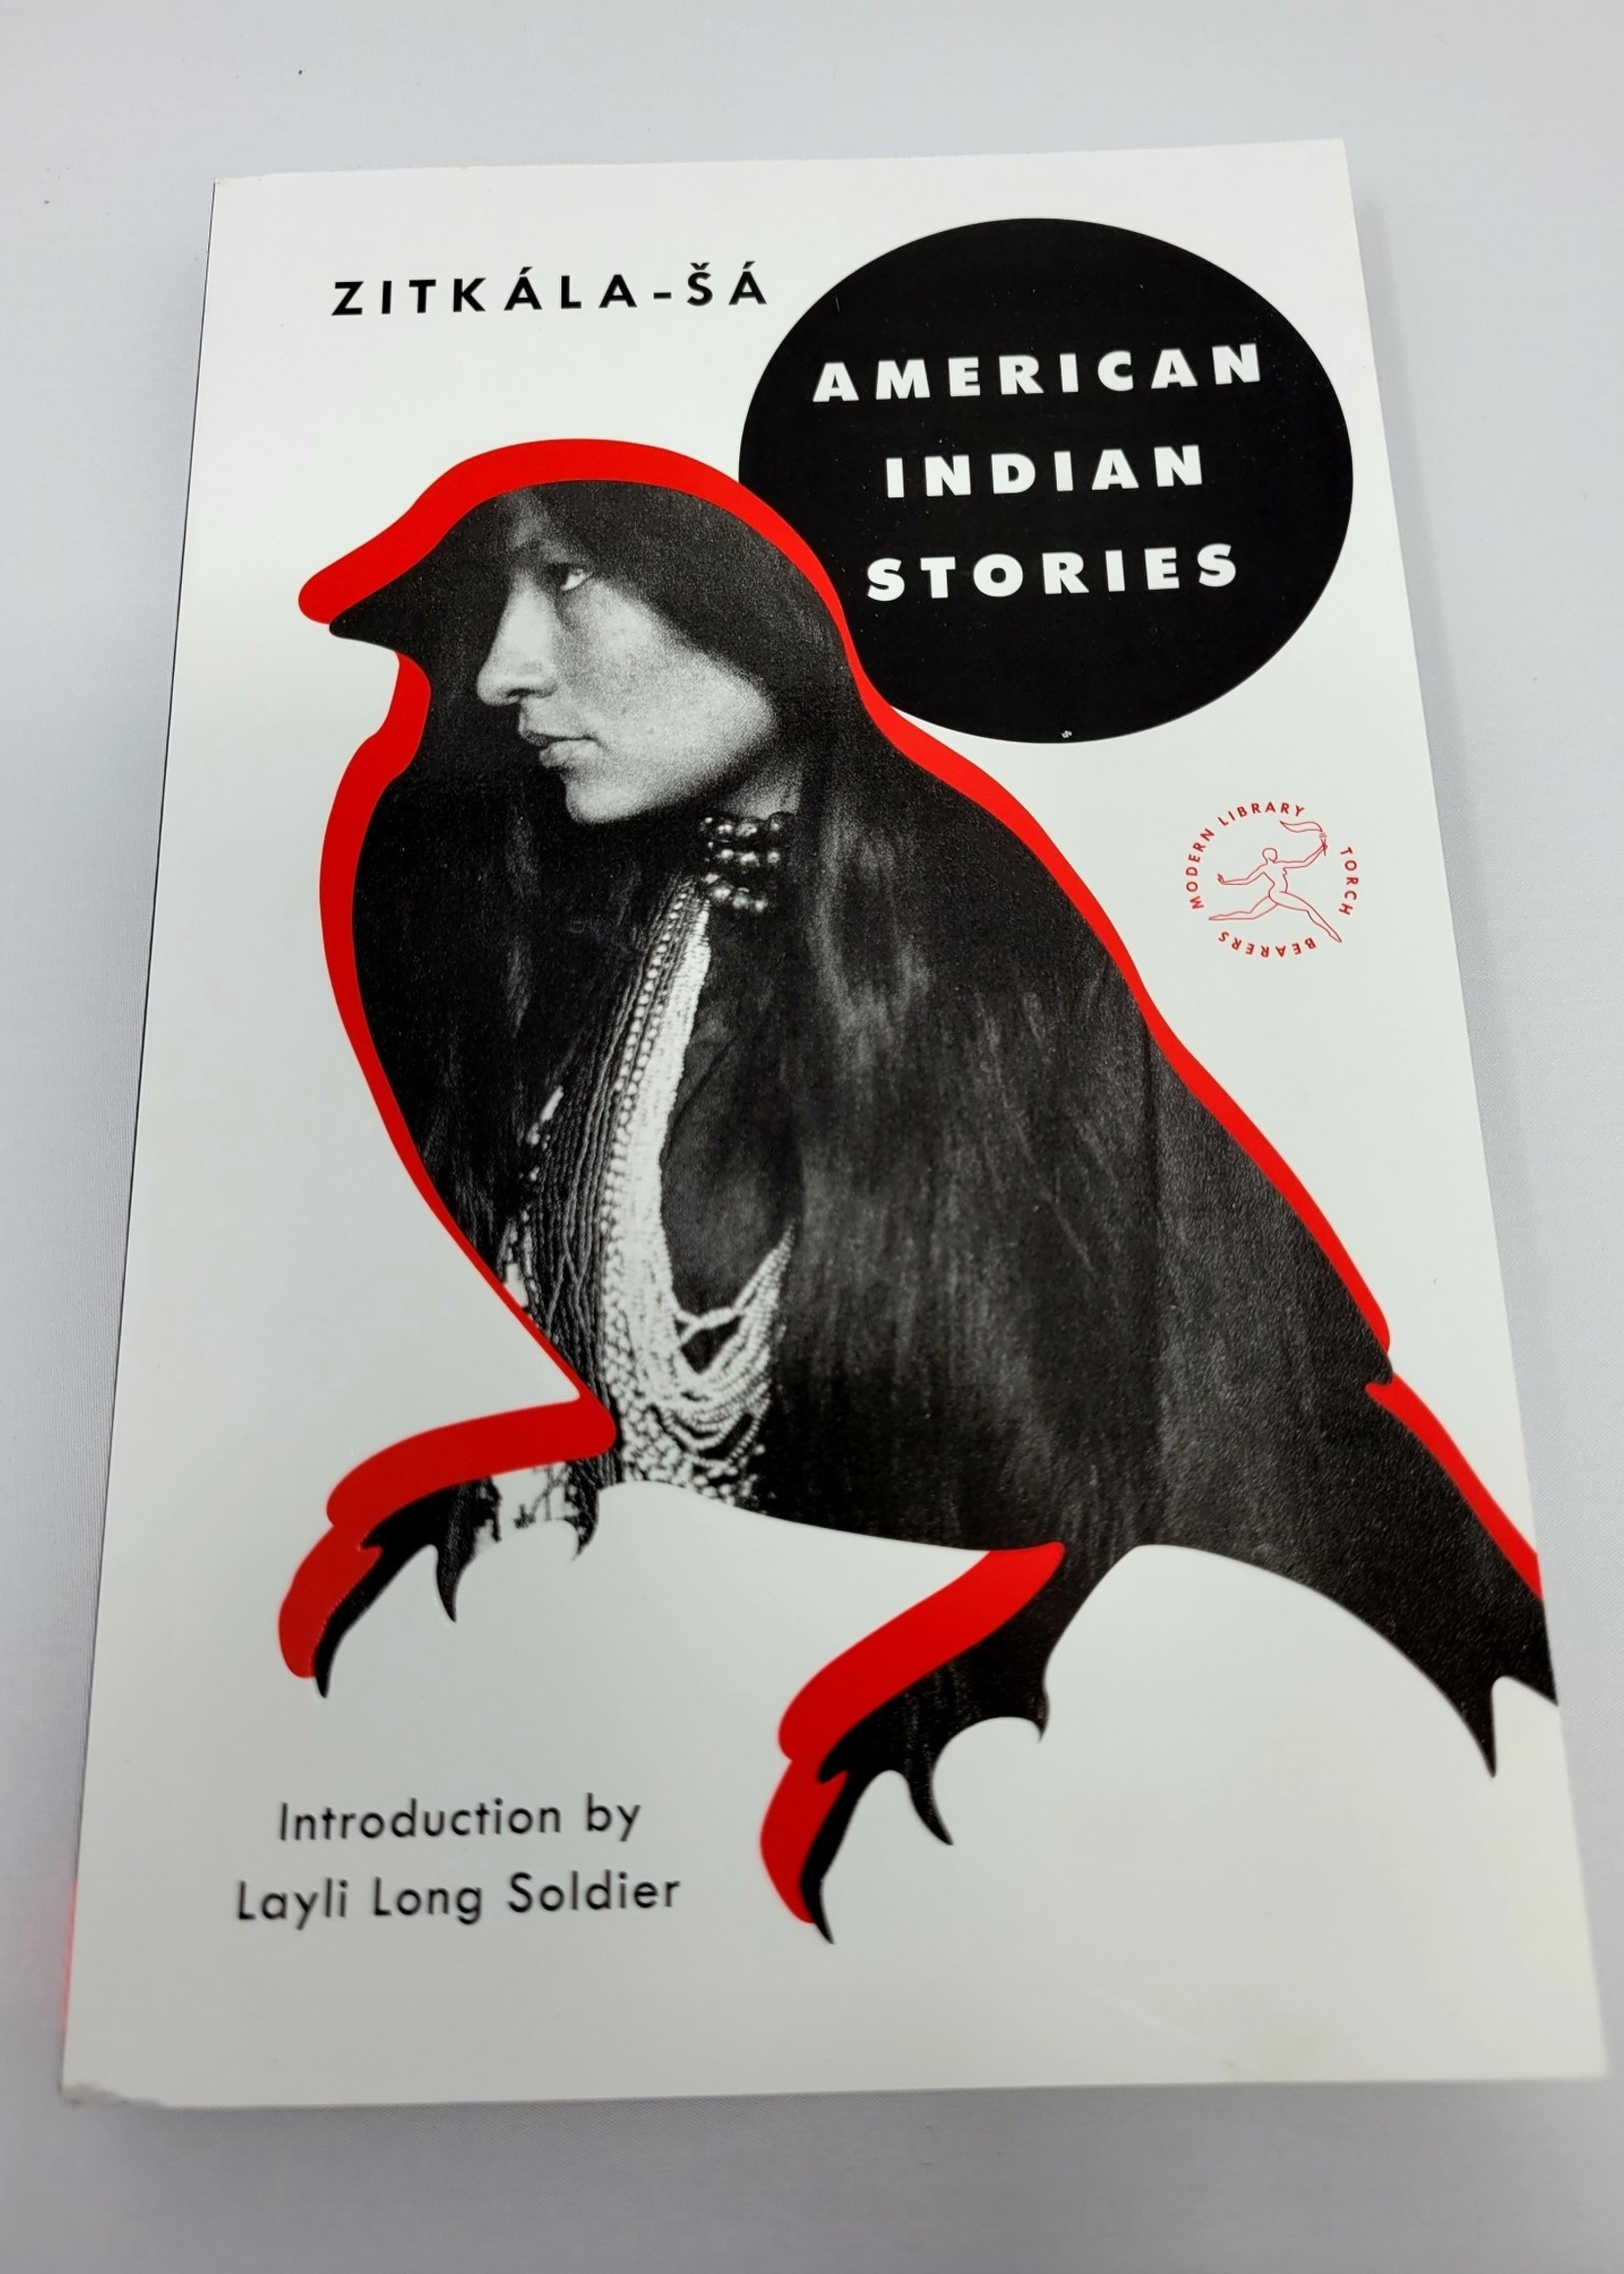 American Indian Stories By ZITKALA-SA Introduction by Layli Long Soldier